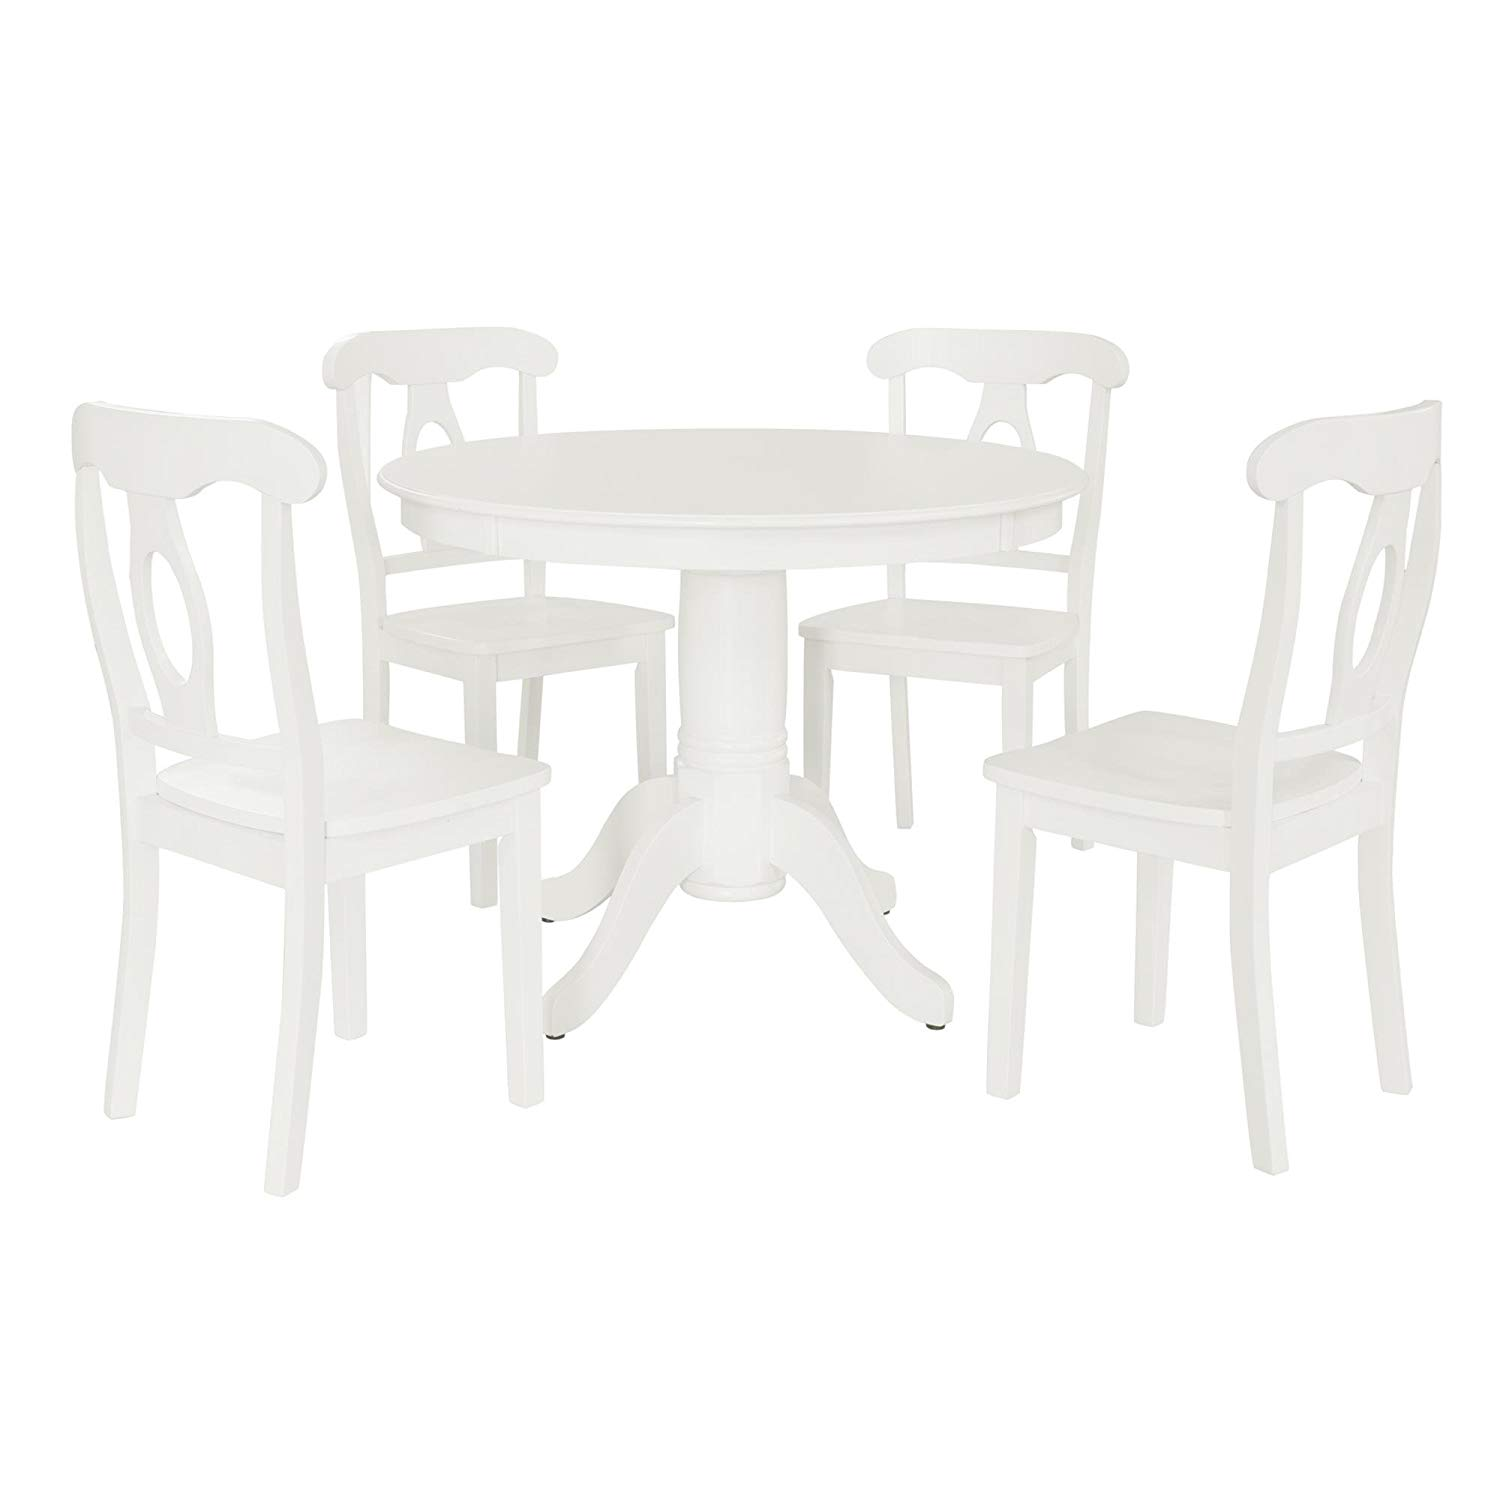 Stylish 5-Piece Pedestal Dining Set, Traditional Height, Seats 4 People, Round Pedestal Table, 4 Napoleon Style Chairs, Sturdy and Long Lasting Solid Wood Construction, Black or White Finish